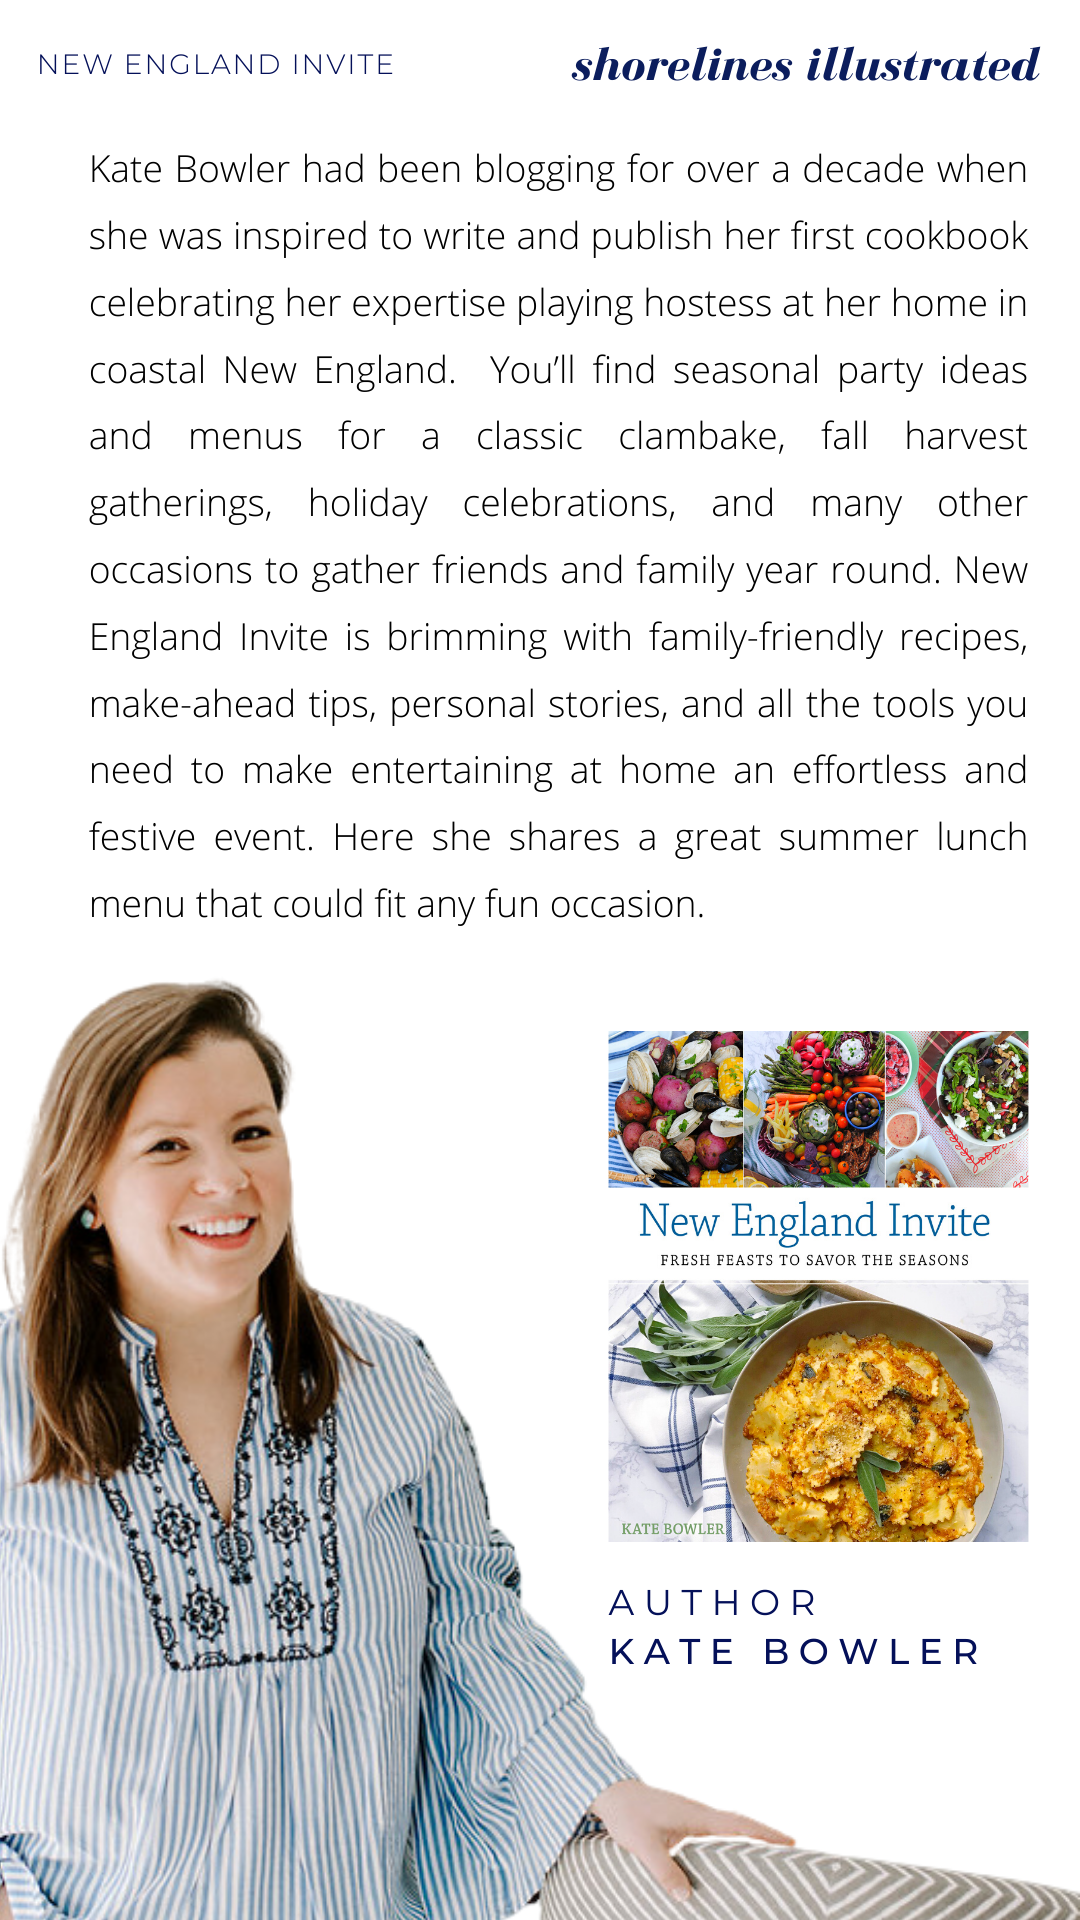 Classic_Summertime_Lunch_Menu_Lobster_Rolls_Kate_Bowler_New_England_Invite_2